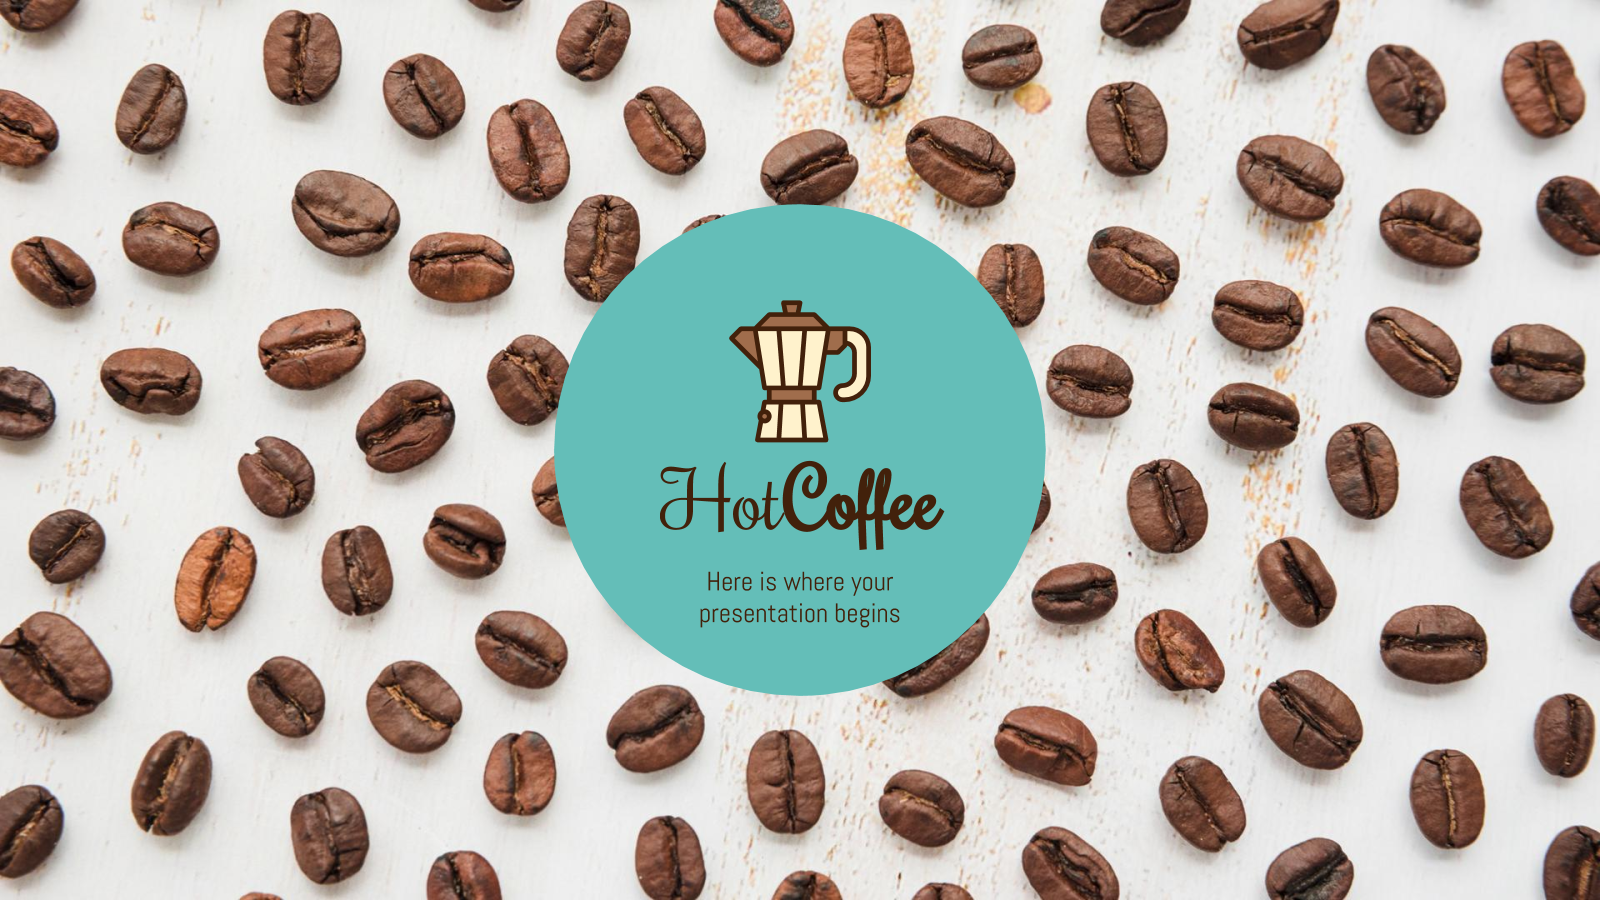 Hot Coffee Shop presentation template